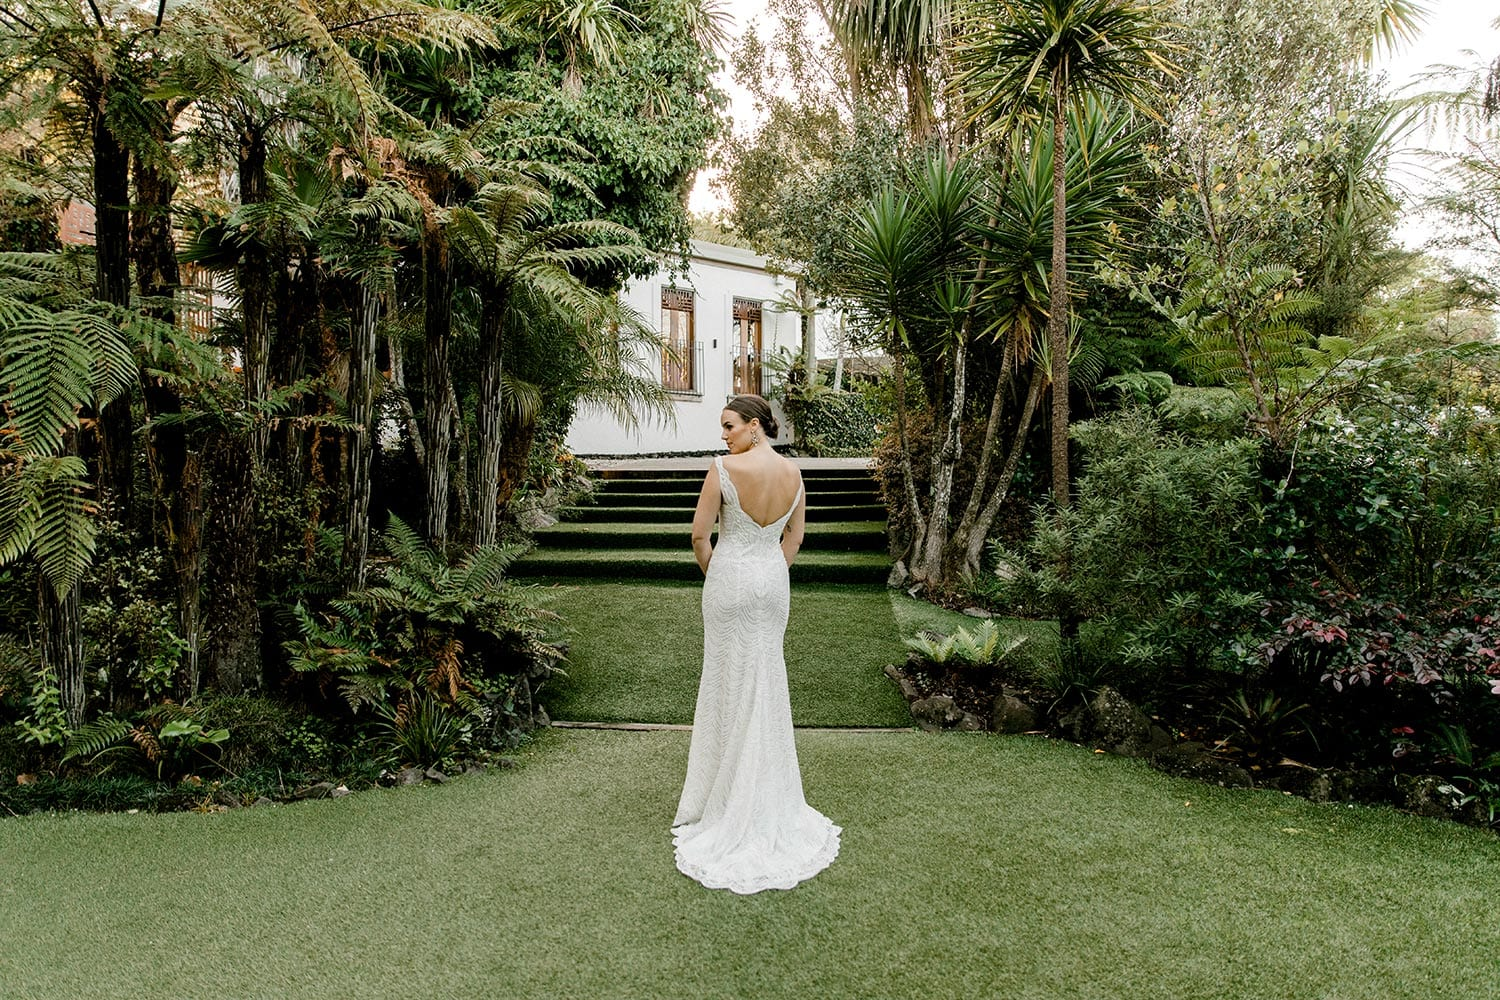 Juliette Wedding Dress from Vinka Design. Flattering stretch fitted lace wedding dress with beautiful ivory rich beading. Structured bodice provides support while remaining effortless to wear. Full length landscape of dress from behind with train to the side. Photographed at Tui Hills.